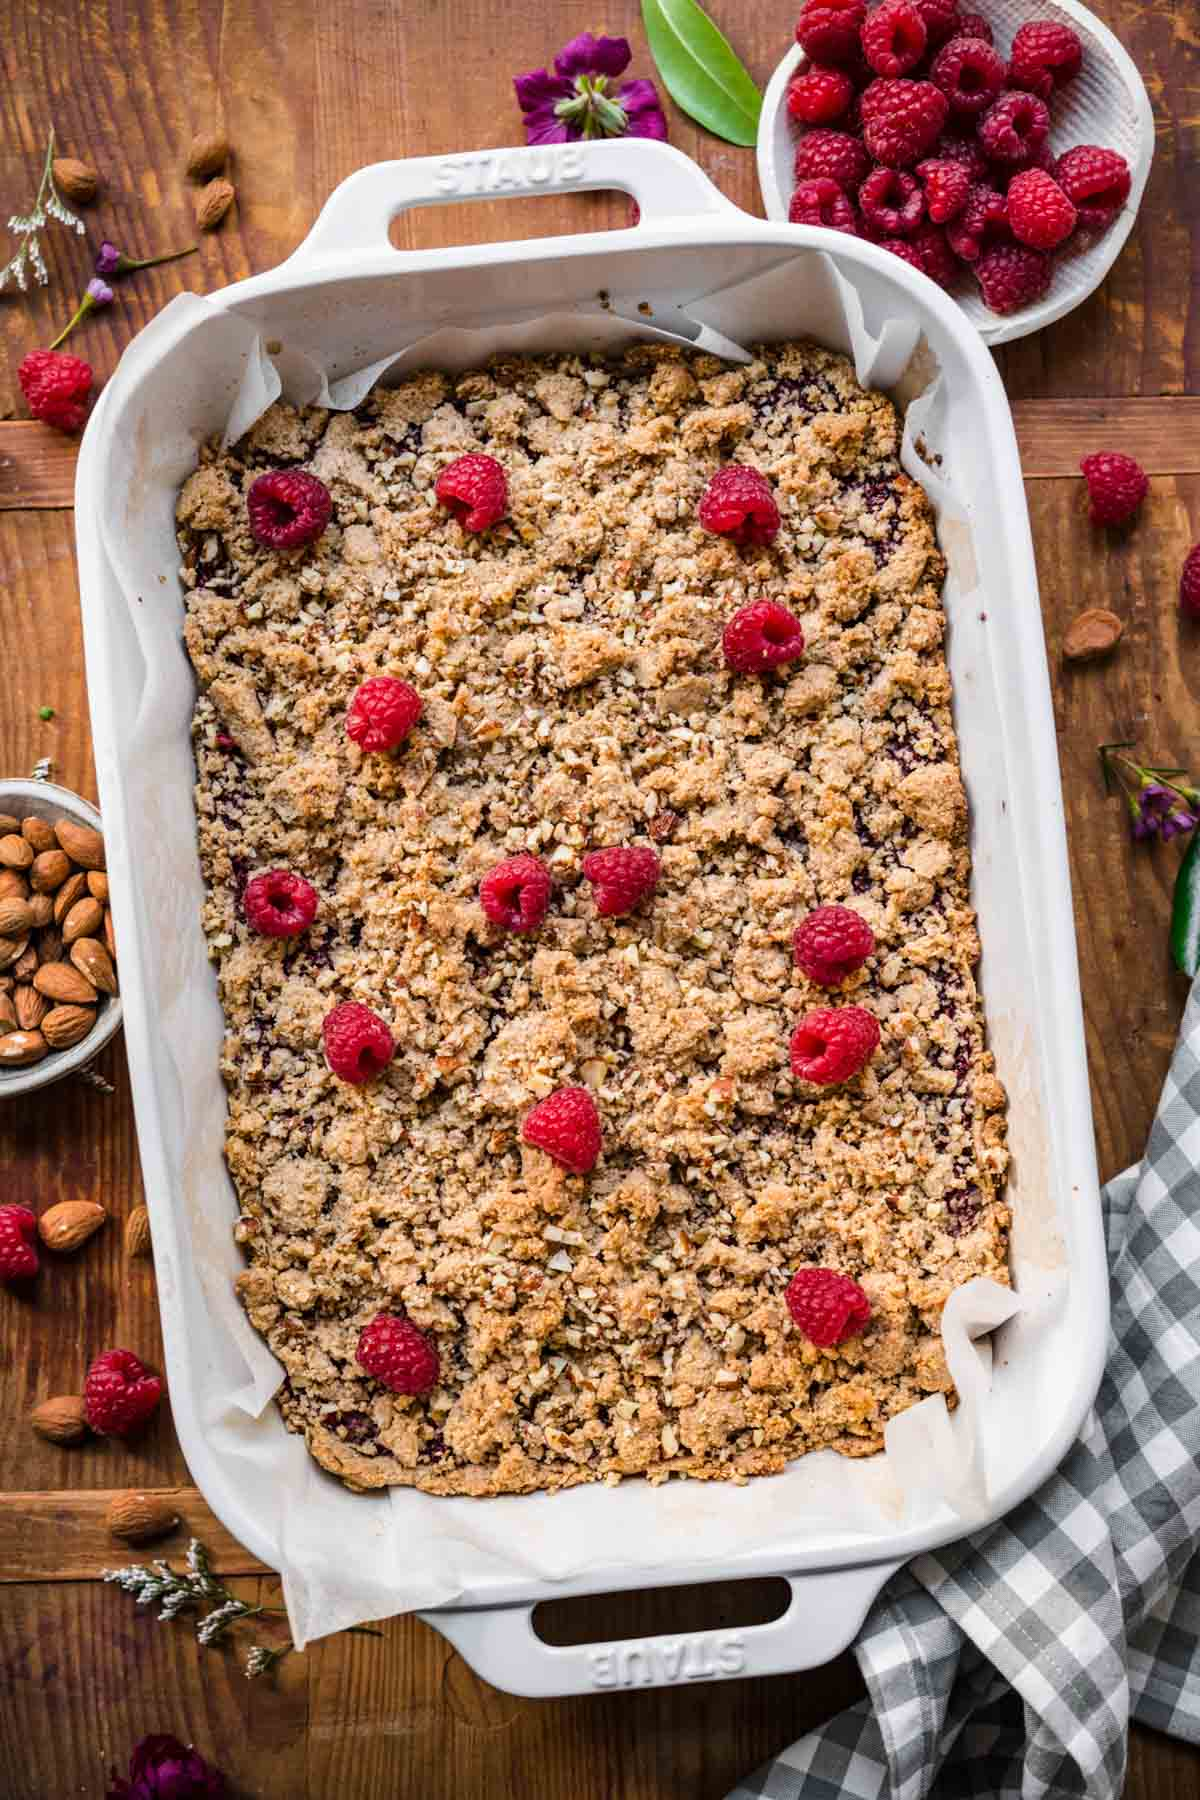 overhead view of raspberry crumble bars in white baking pan with fresh raspberries on top.